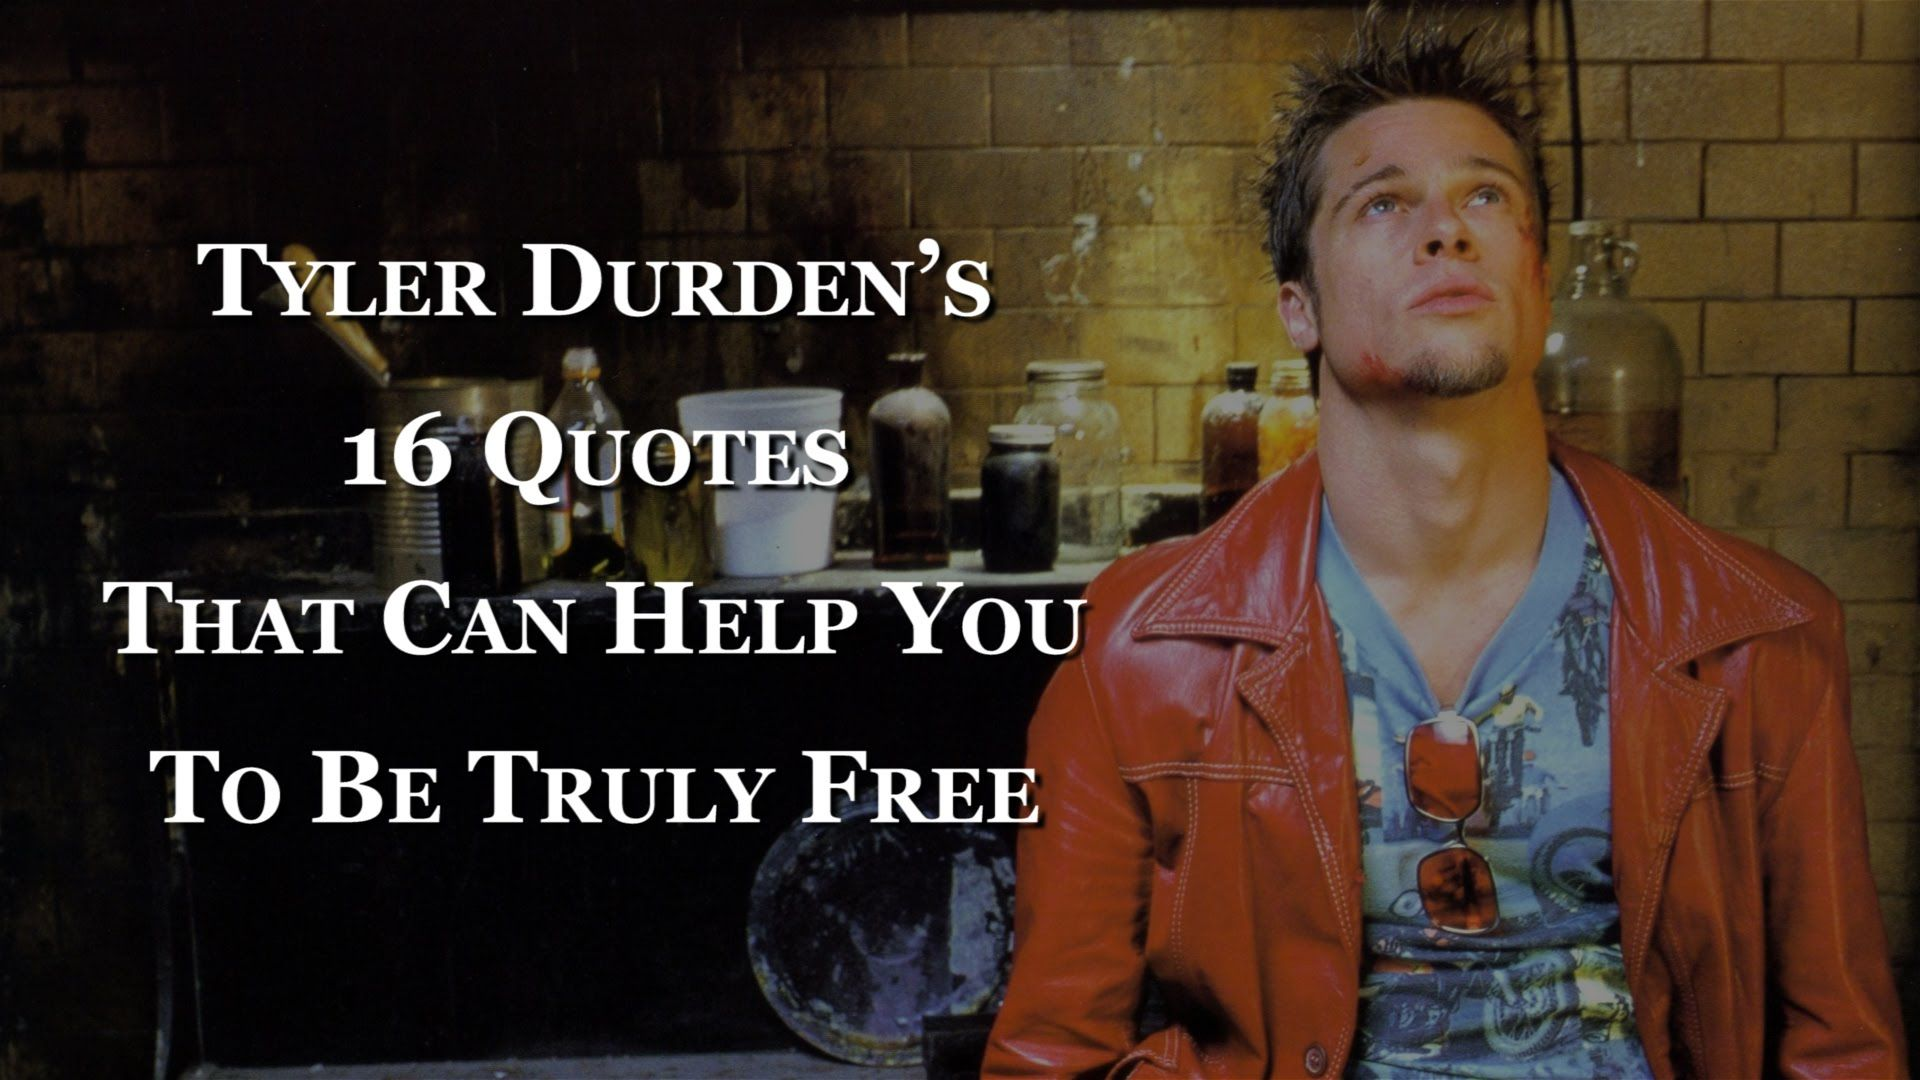 Quotes From The Movie The Help Tyler Durden's 16 Quotes That Can Help You To Be Truly Free